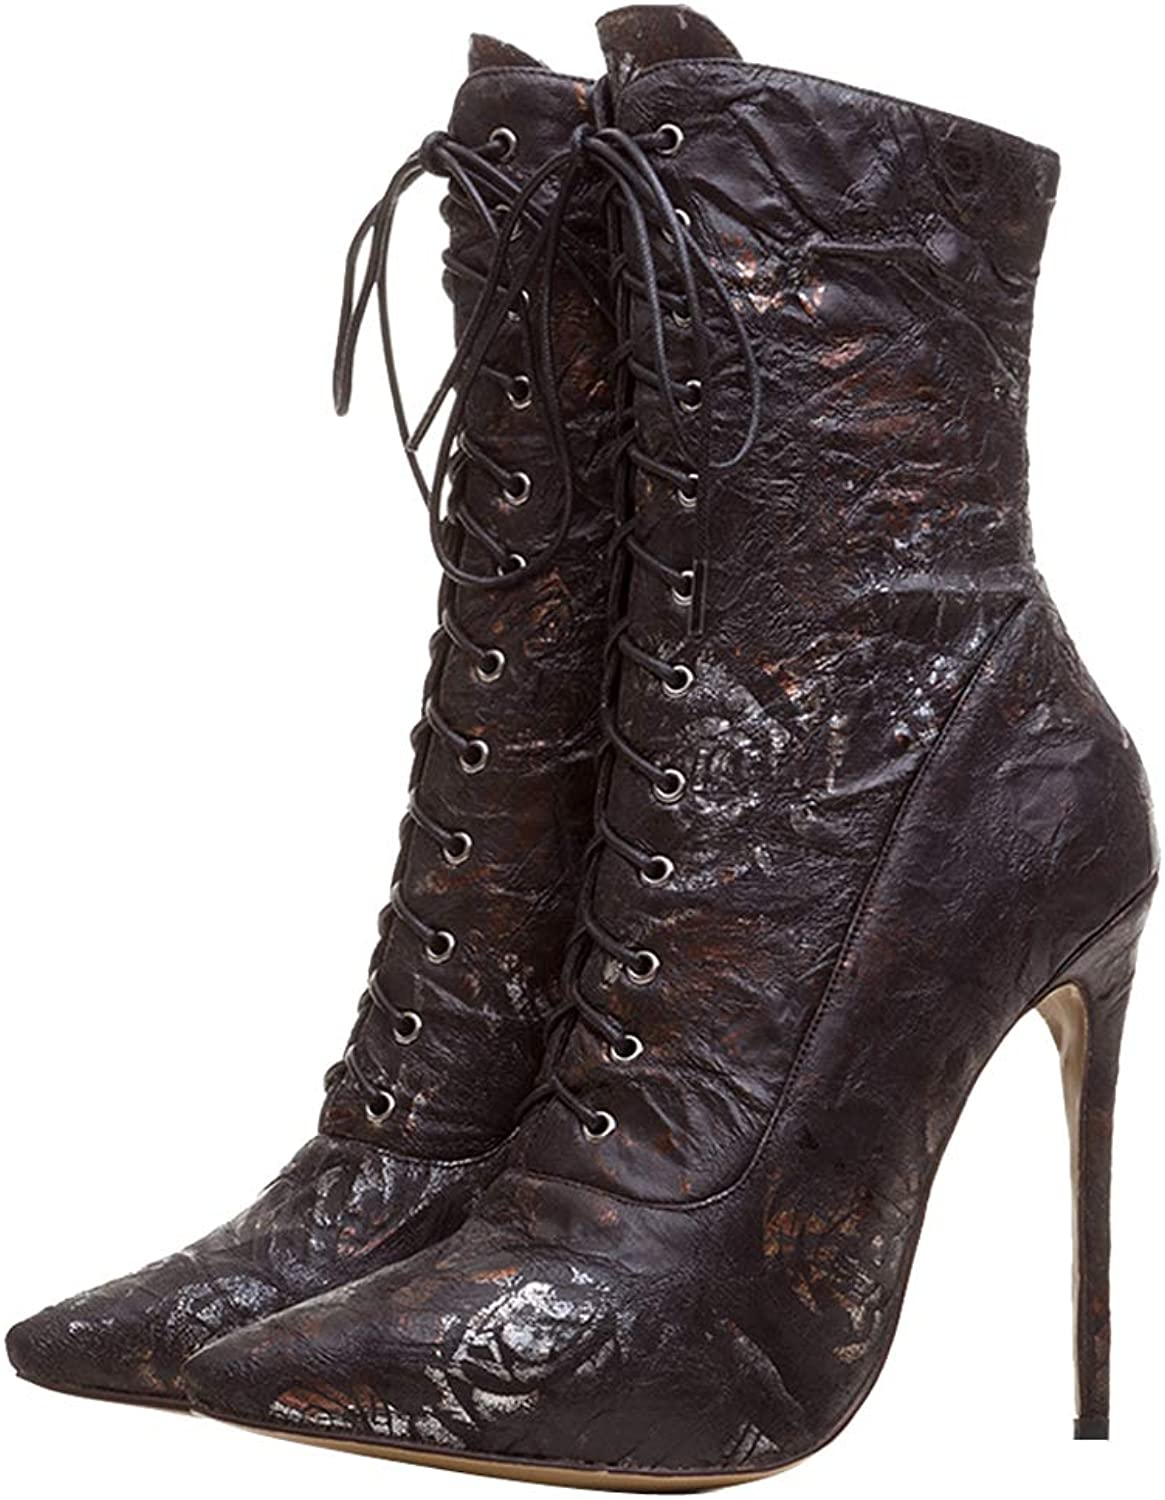 Themost Womens Ankle Boots,Lace Up High Heel Boot Winter Pointed Toe Booties Black